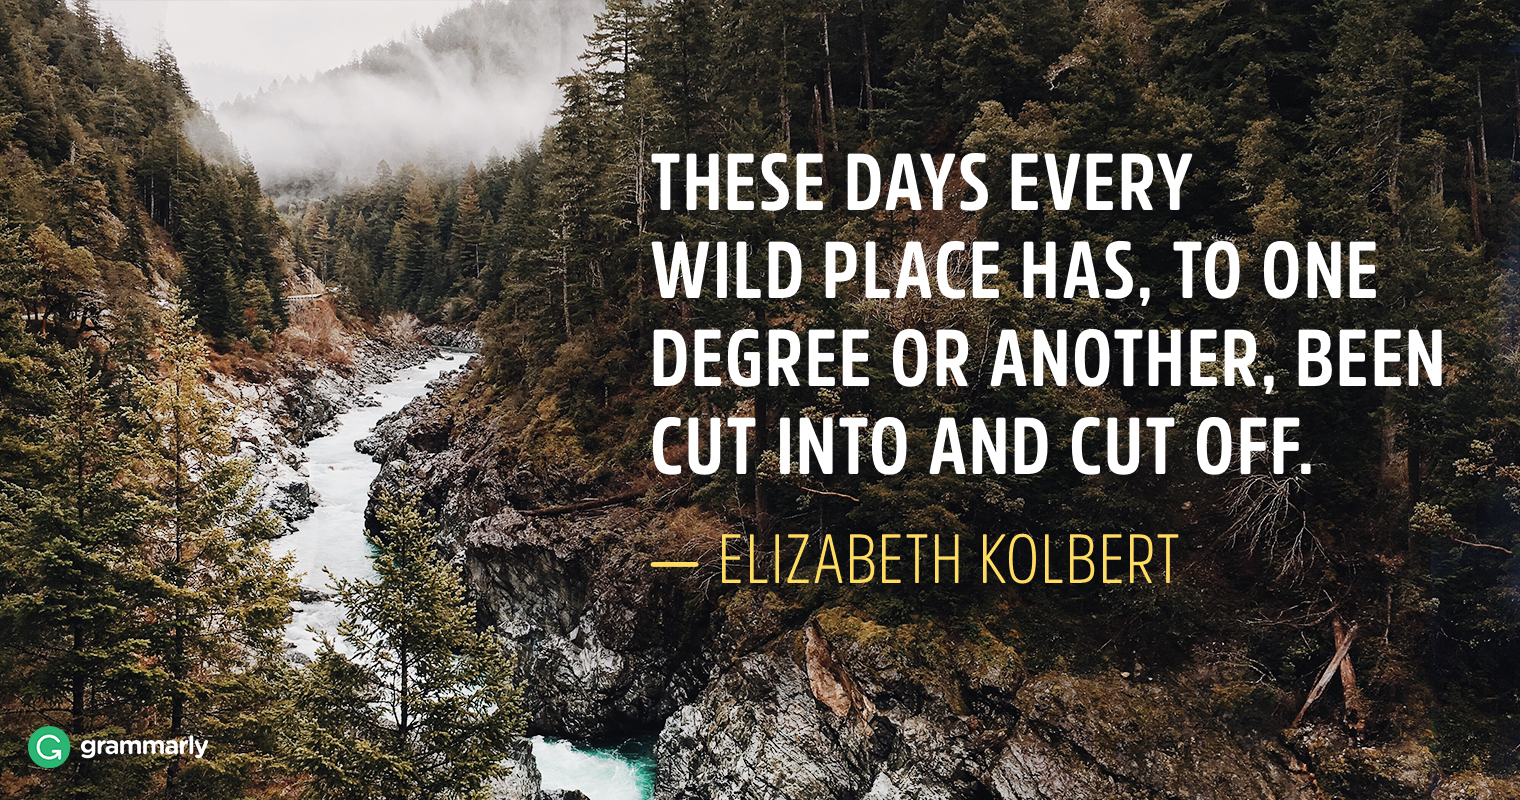 8 Things We Can All Learn From Elizabeth Kolbert image